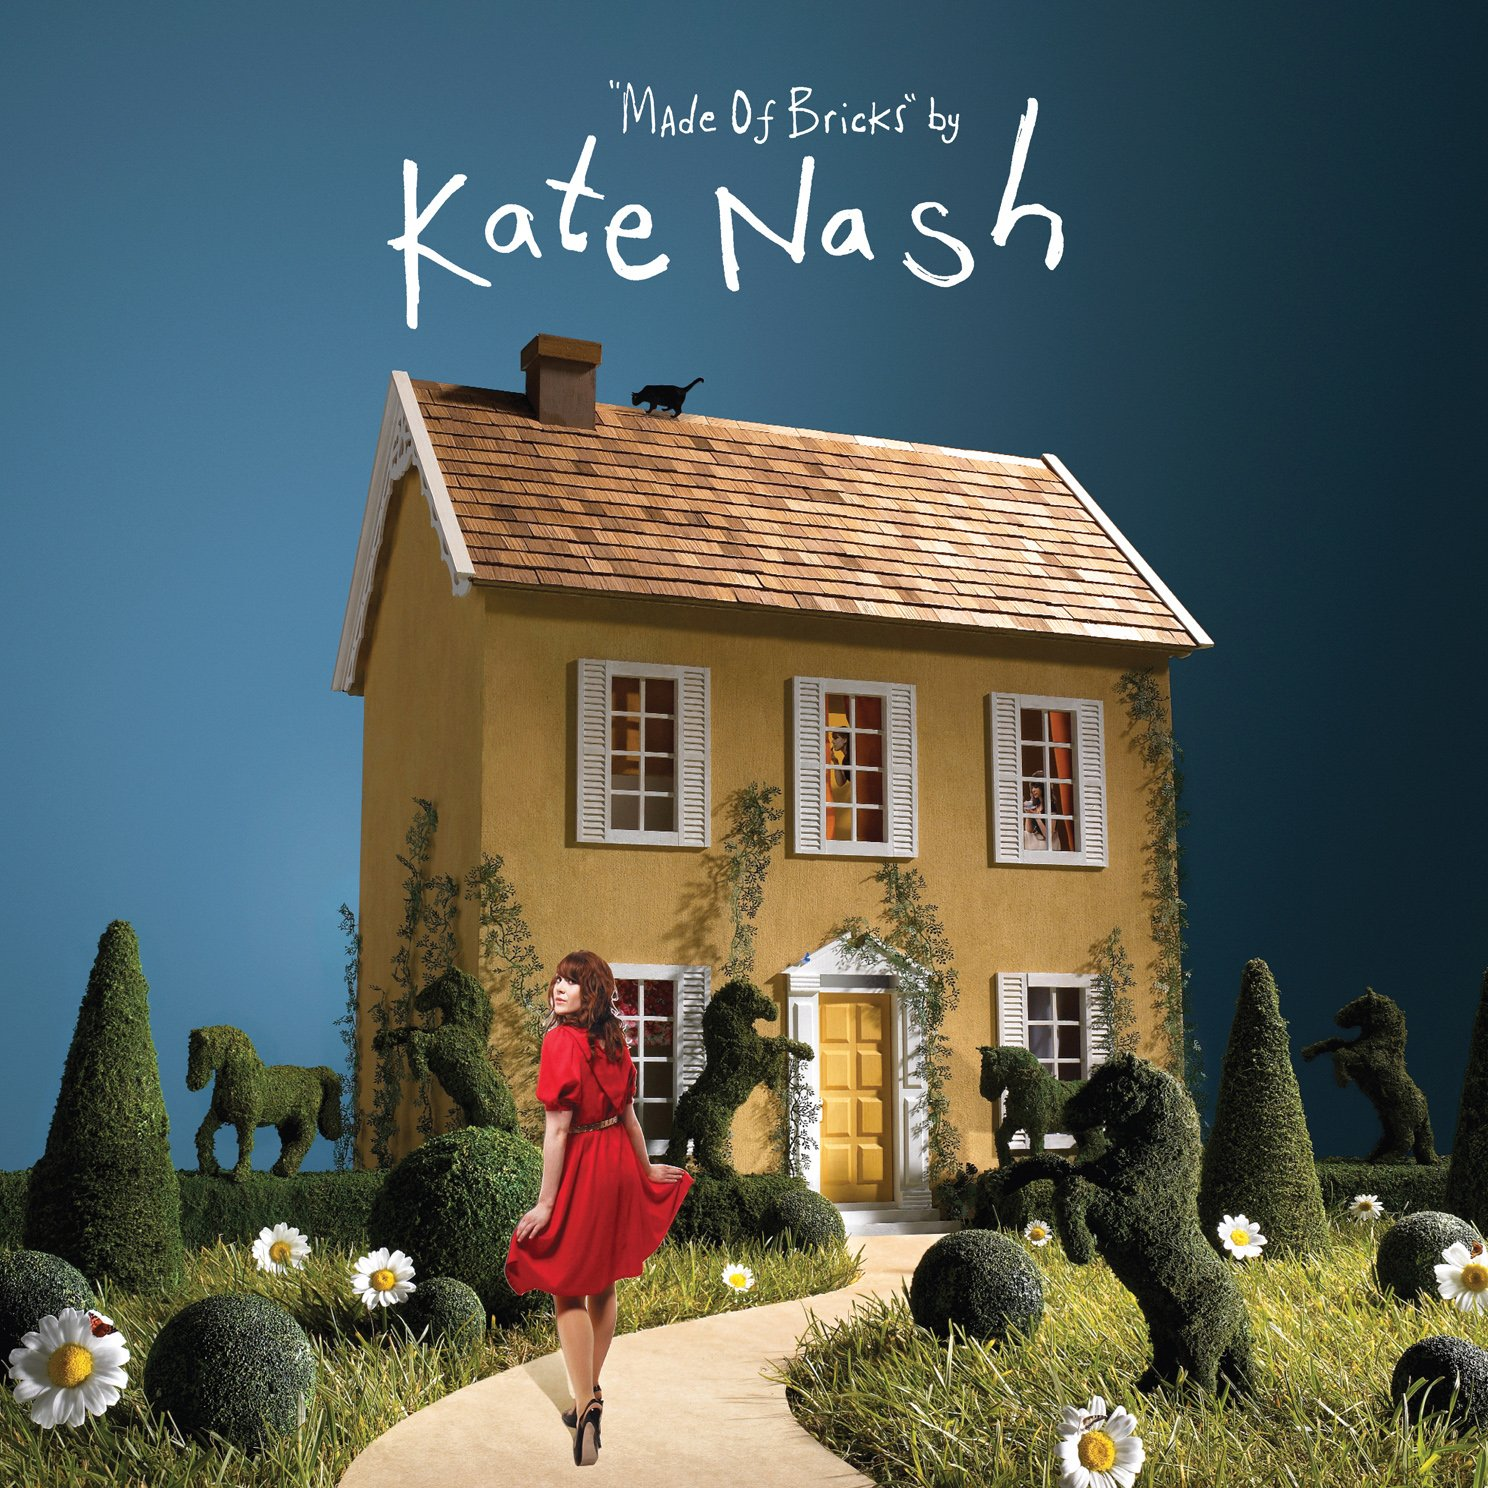 Kate Nash, Made of Bricks